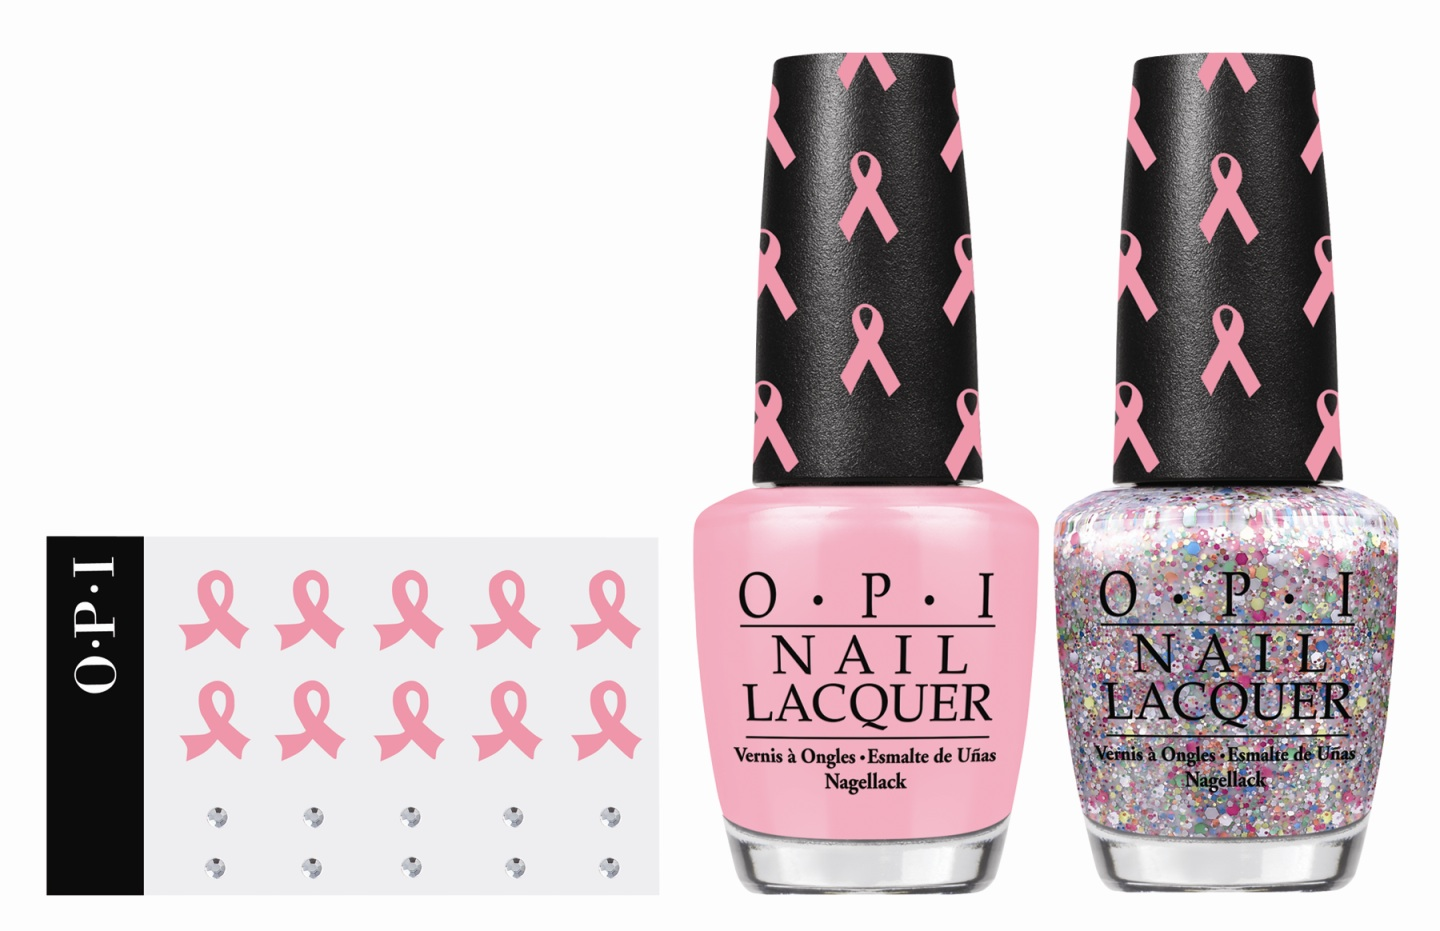 Pink-ing of You and the new More than Glimmer polish make up the limited edition duo, which also includes pink ribbon and crystal decals. In honor of Breast Cancer Awareness Month, OPI will donate a total of $25,000 to Susan G. Komen and $5,000 to Rethink Breast Cancer.